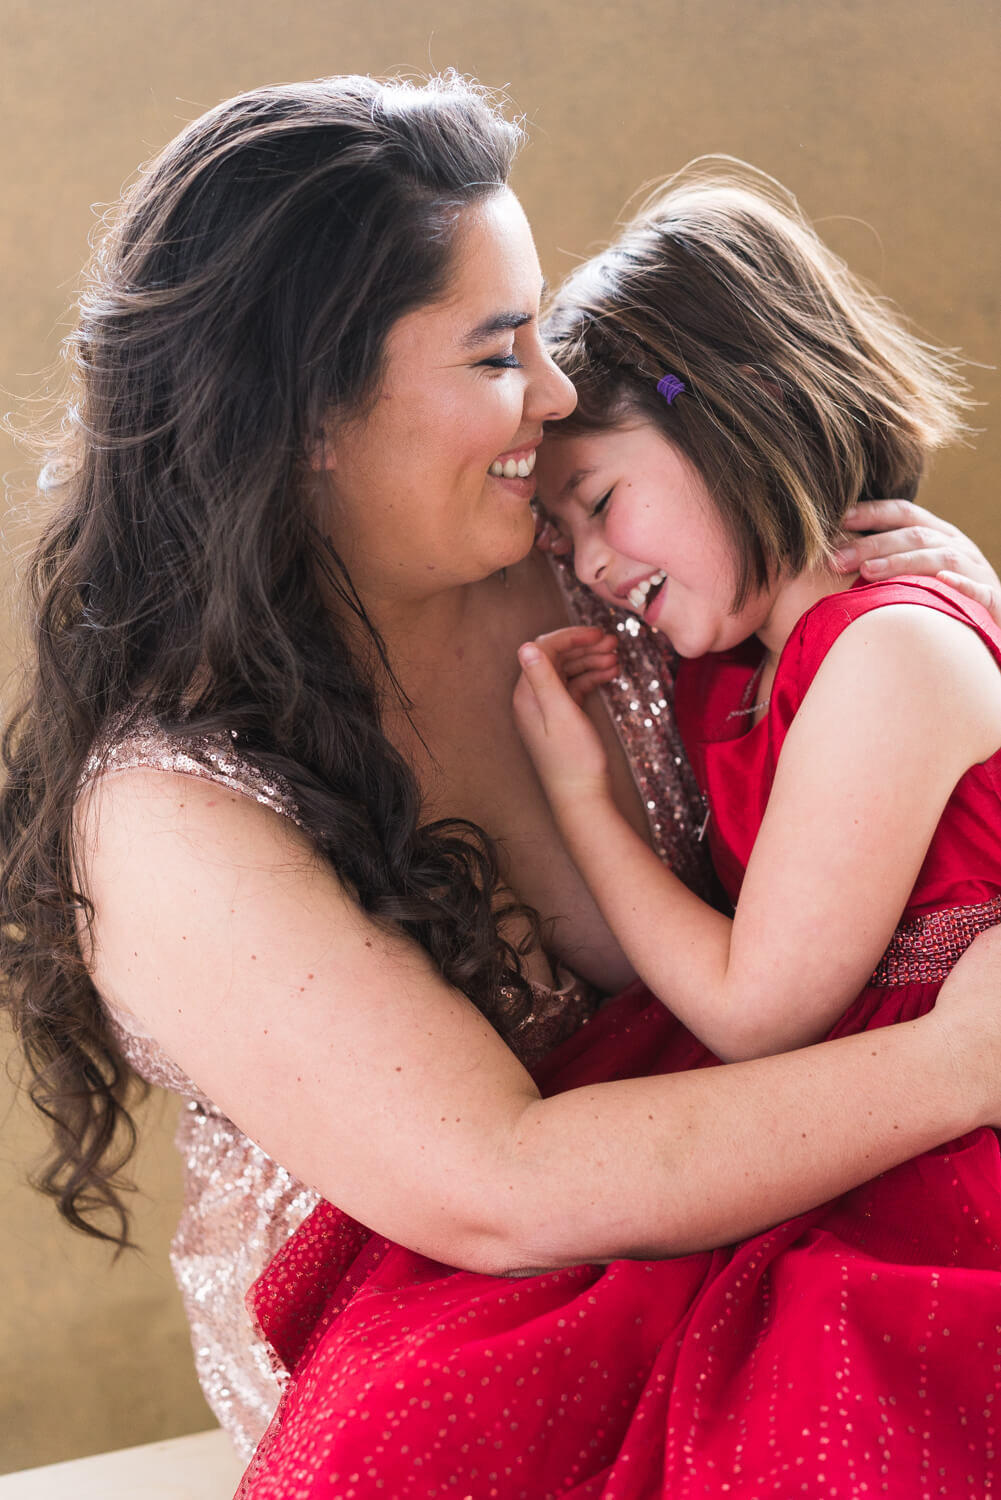 Mother and daughter laughing candidly together in mother daughter photoshoot